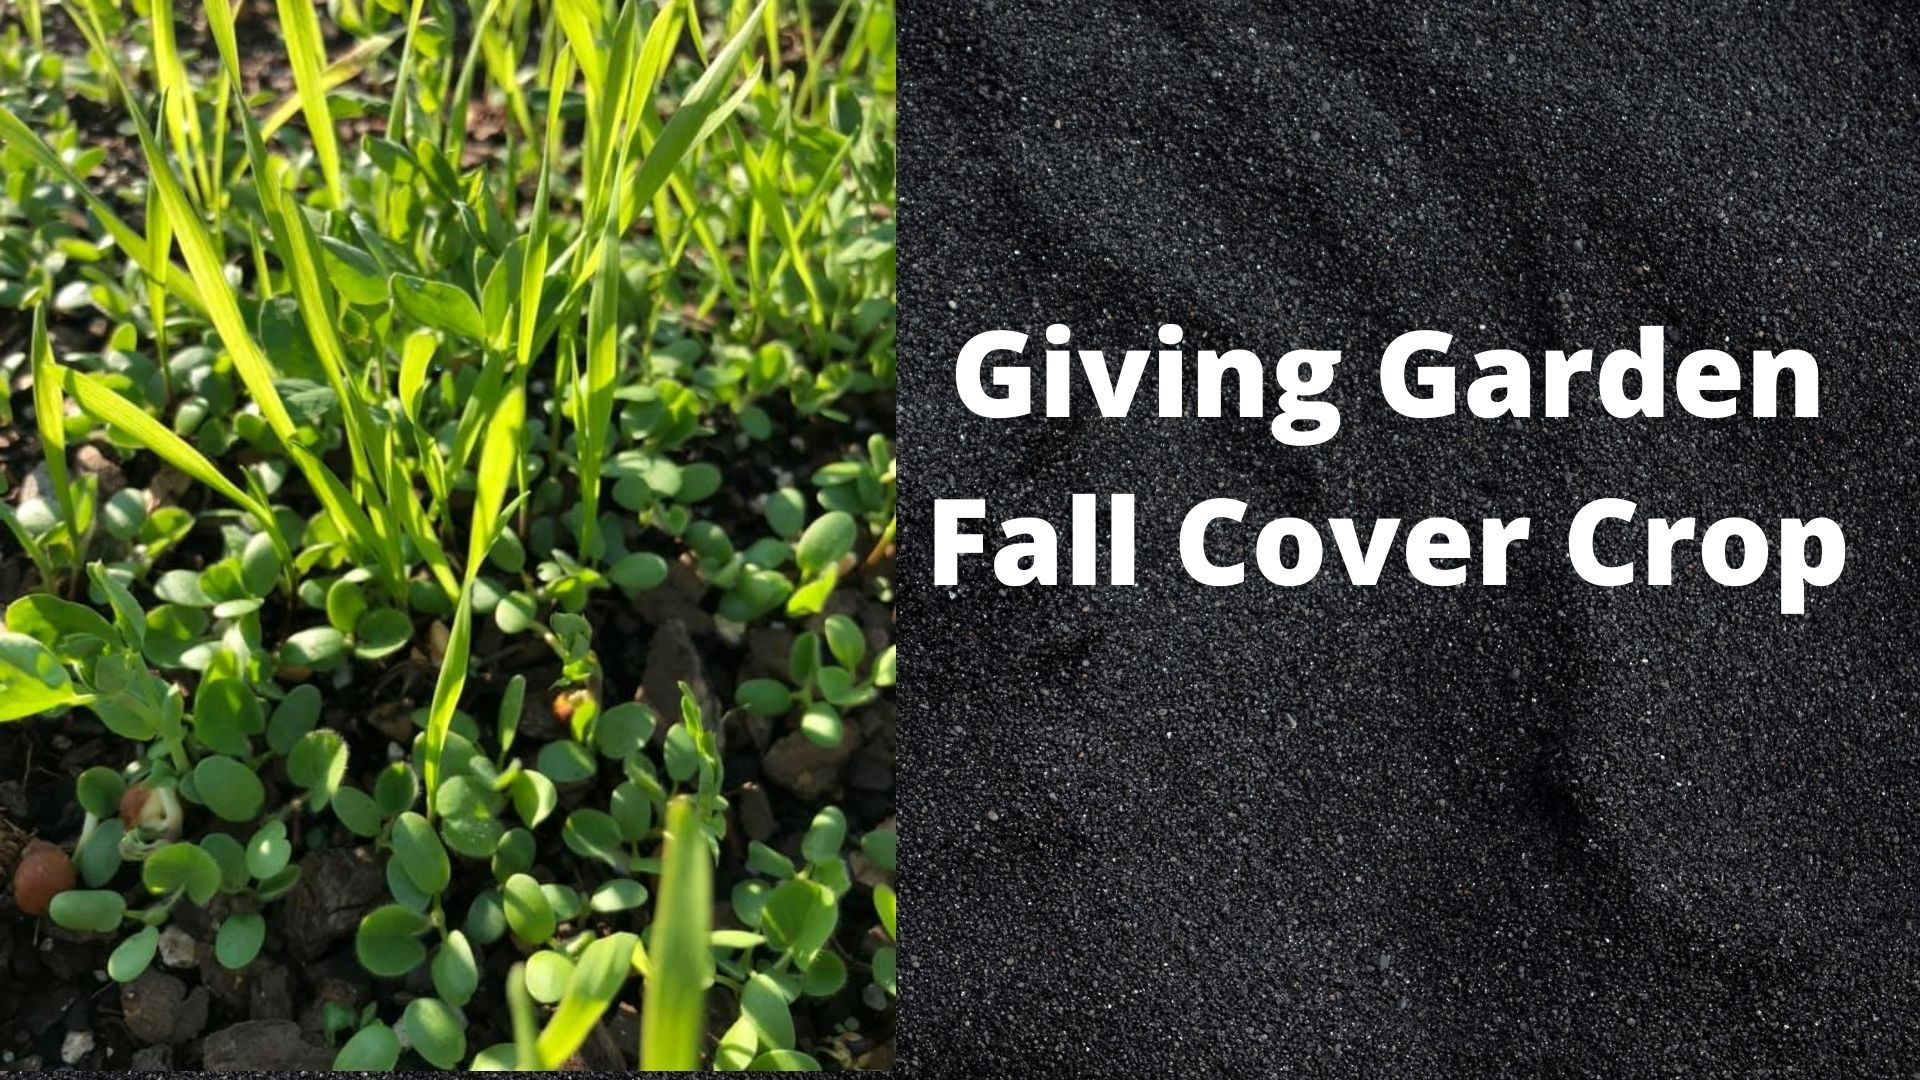 Giving Garden Fall Cover Crop Title Page with a picture of cover crop